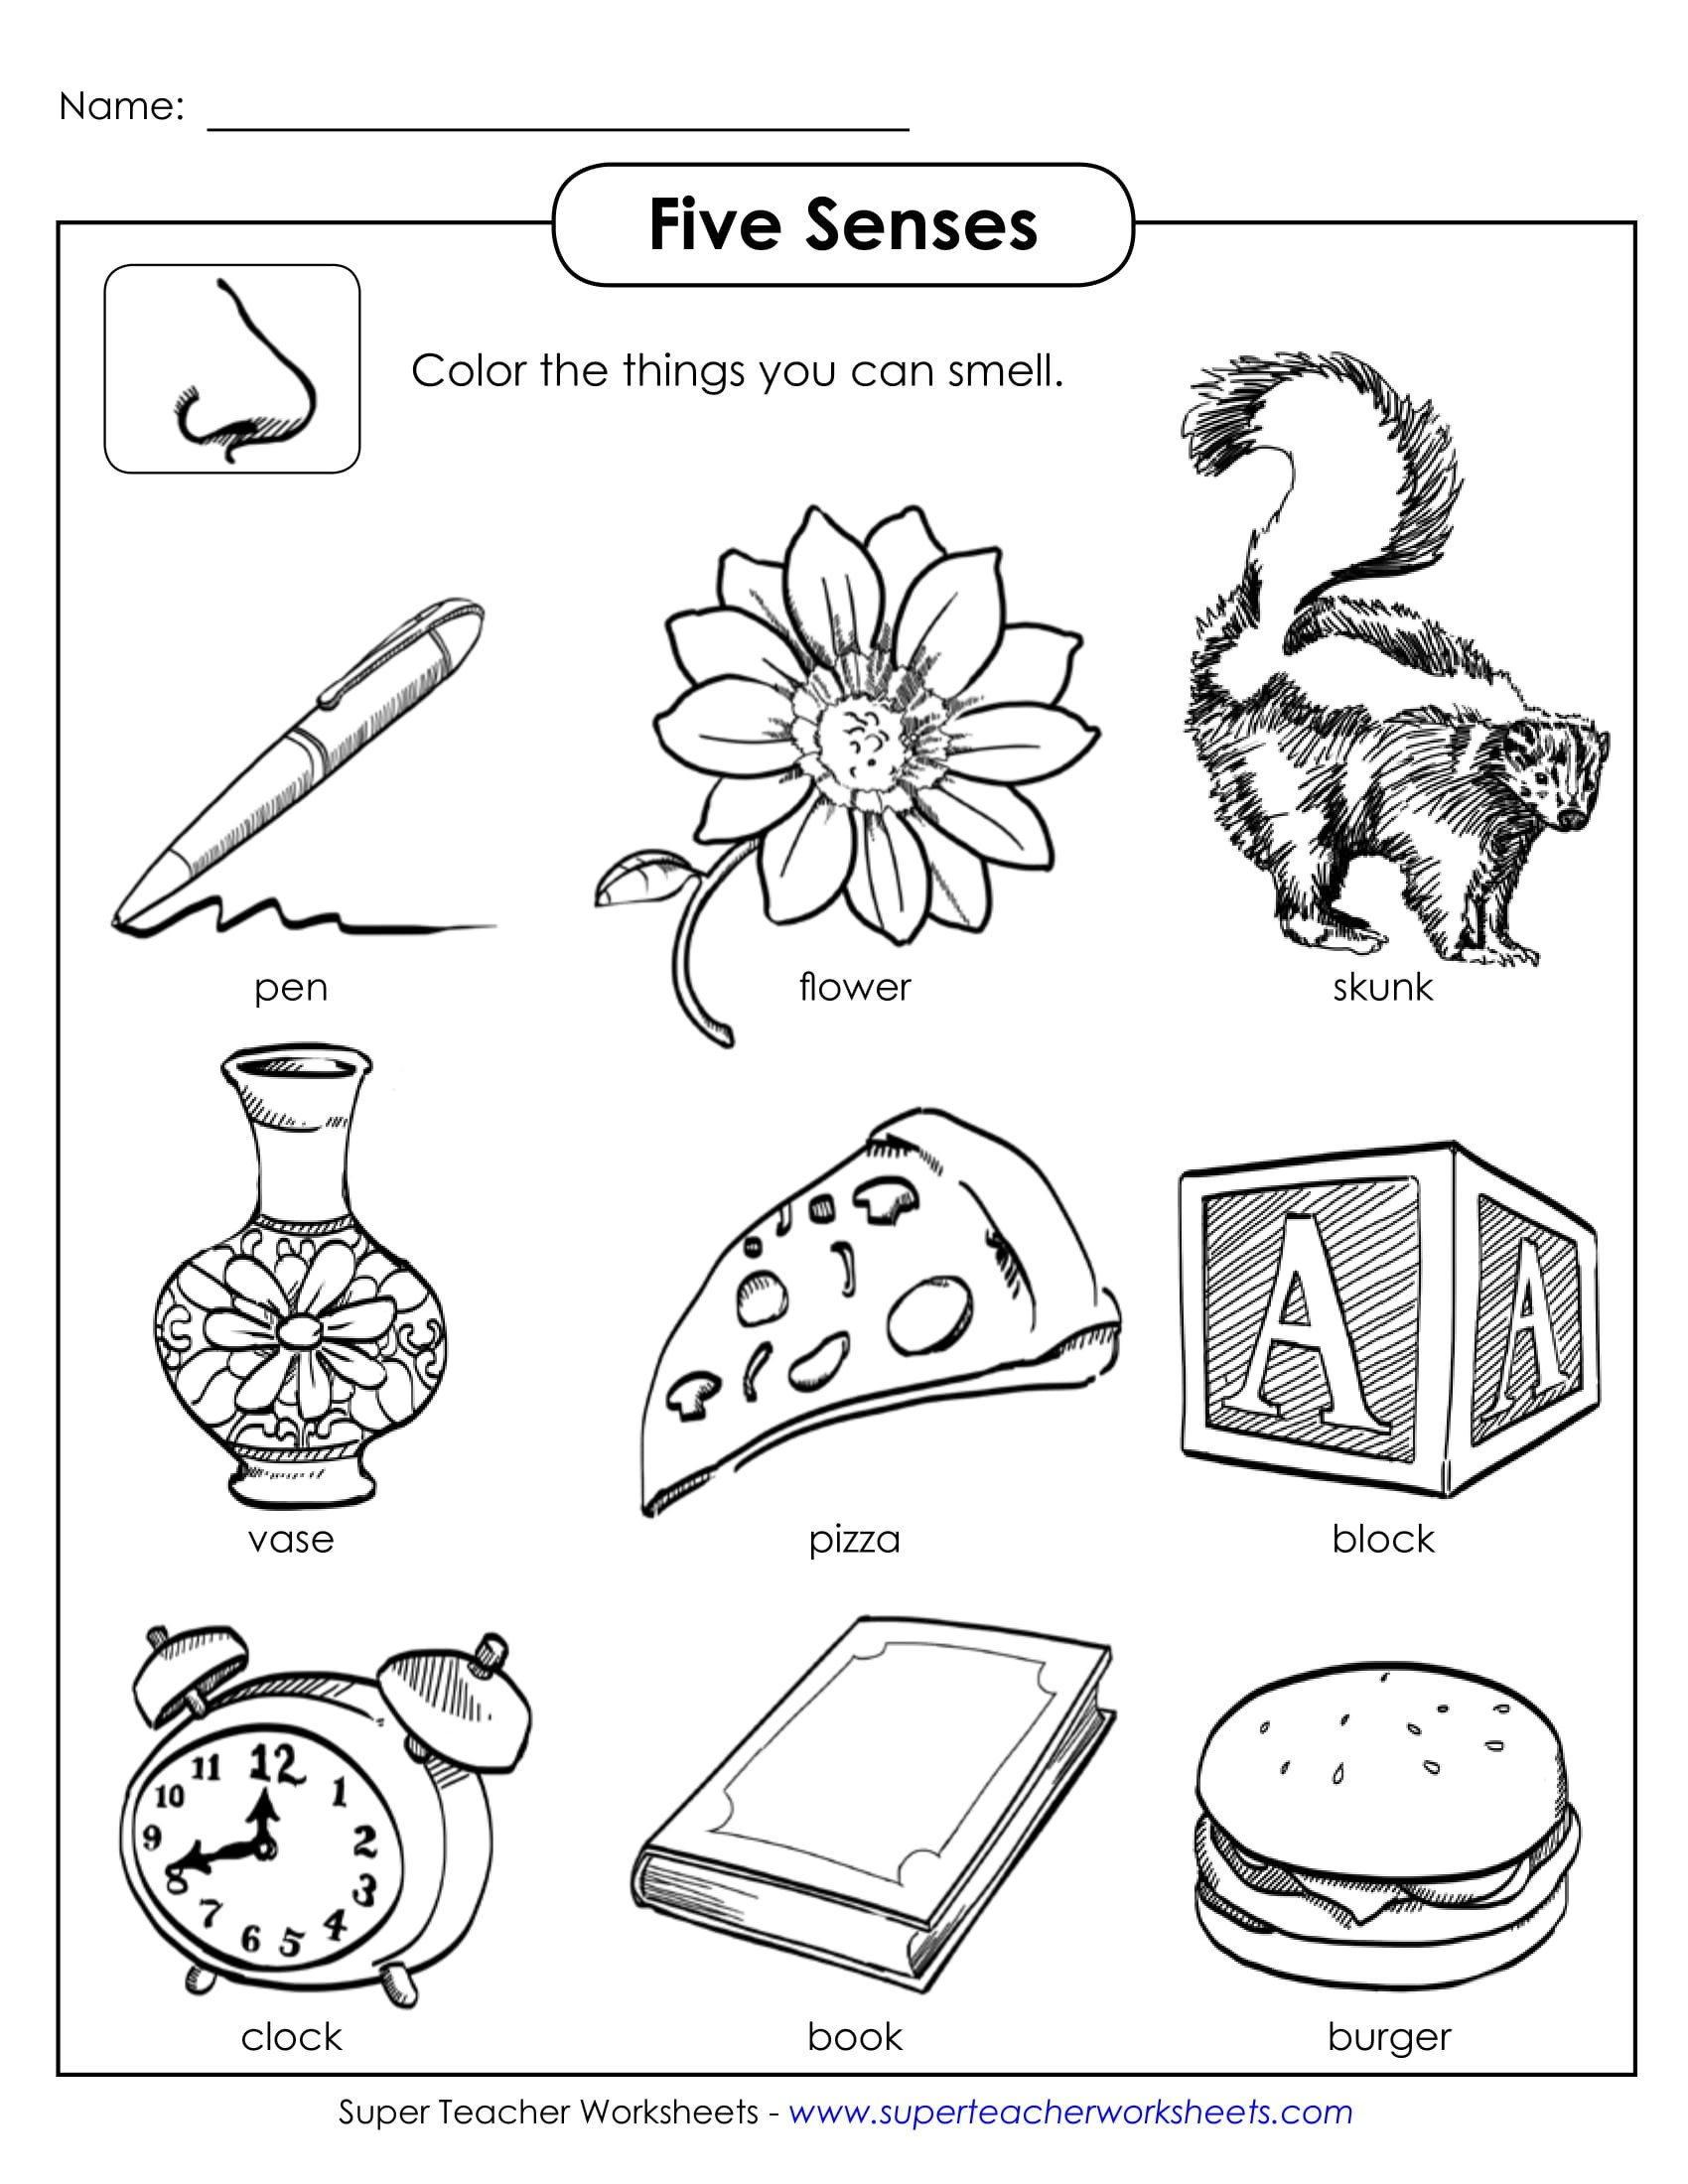 Free Five Senses Worksheets Your Sense Worksheet Printable Worksheets and Activities for